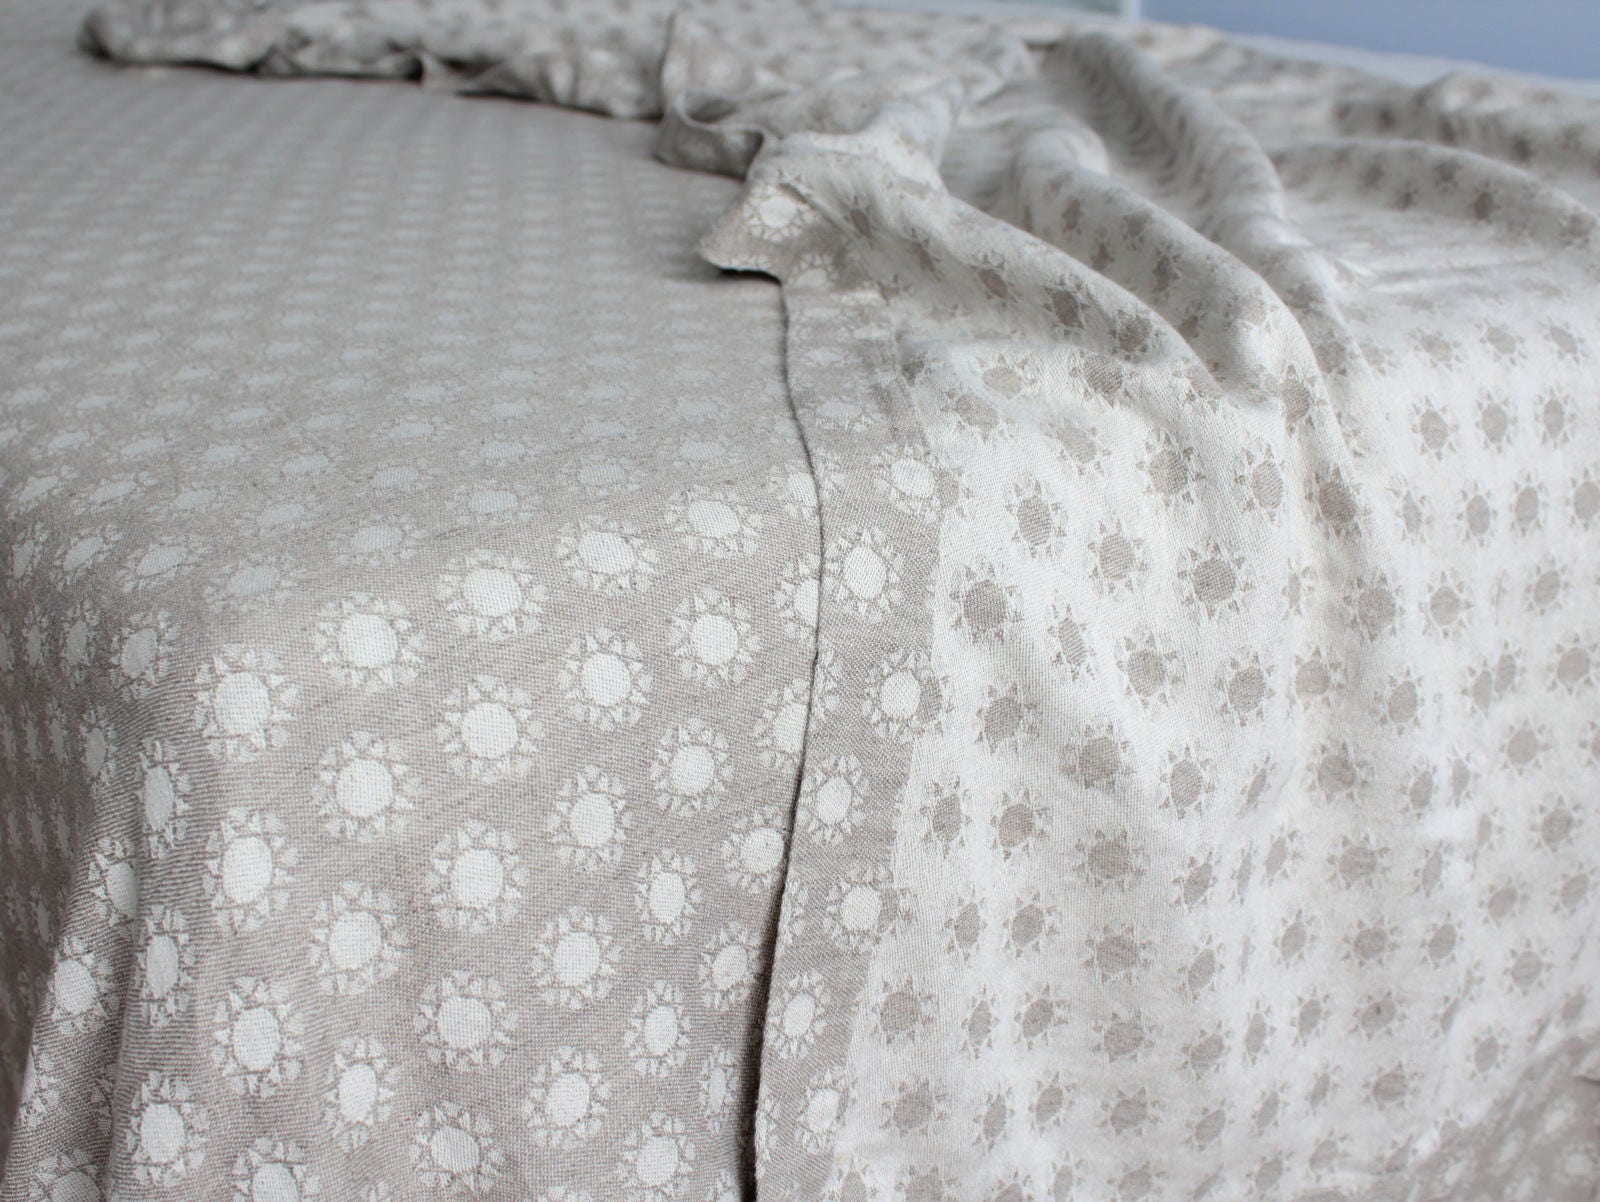 "Gray Linen Bedspread 91""x98"" Bed Cover Cover Covercoveret - Queen King Size Linen wt Cotton Blanket - Textured Linen Bedding - Natural Organic Bedroom"